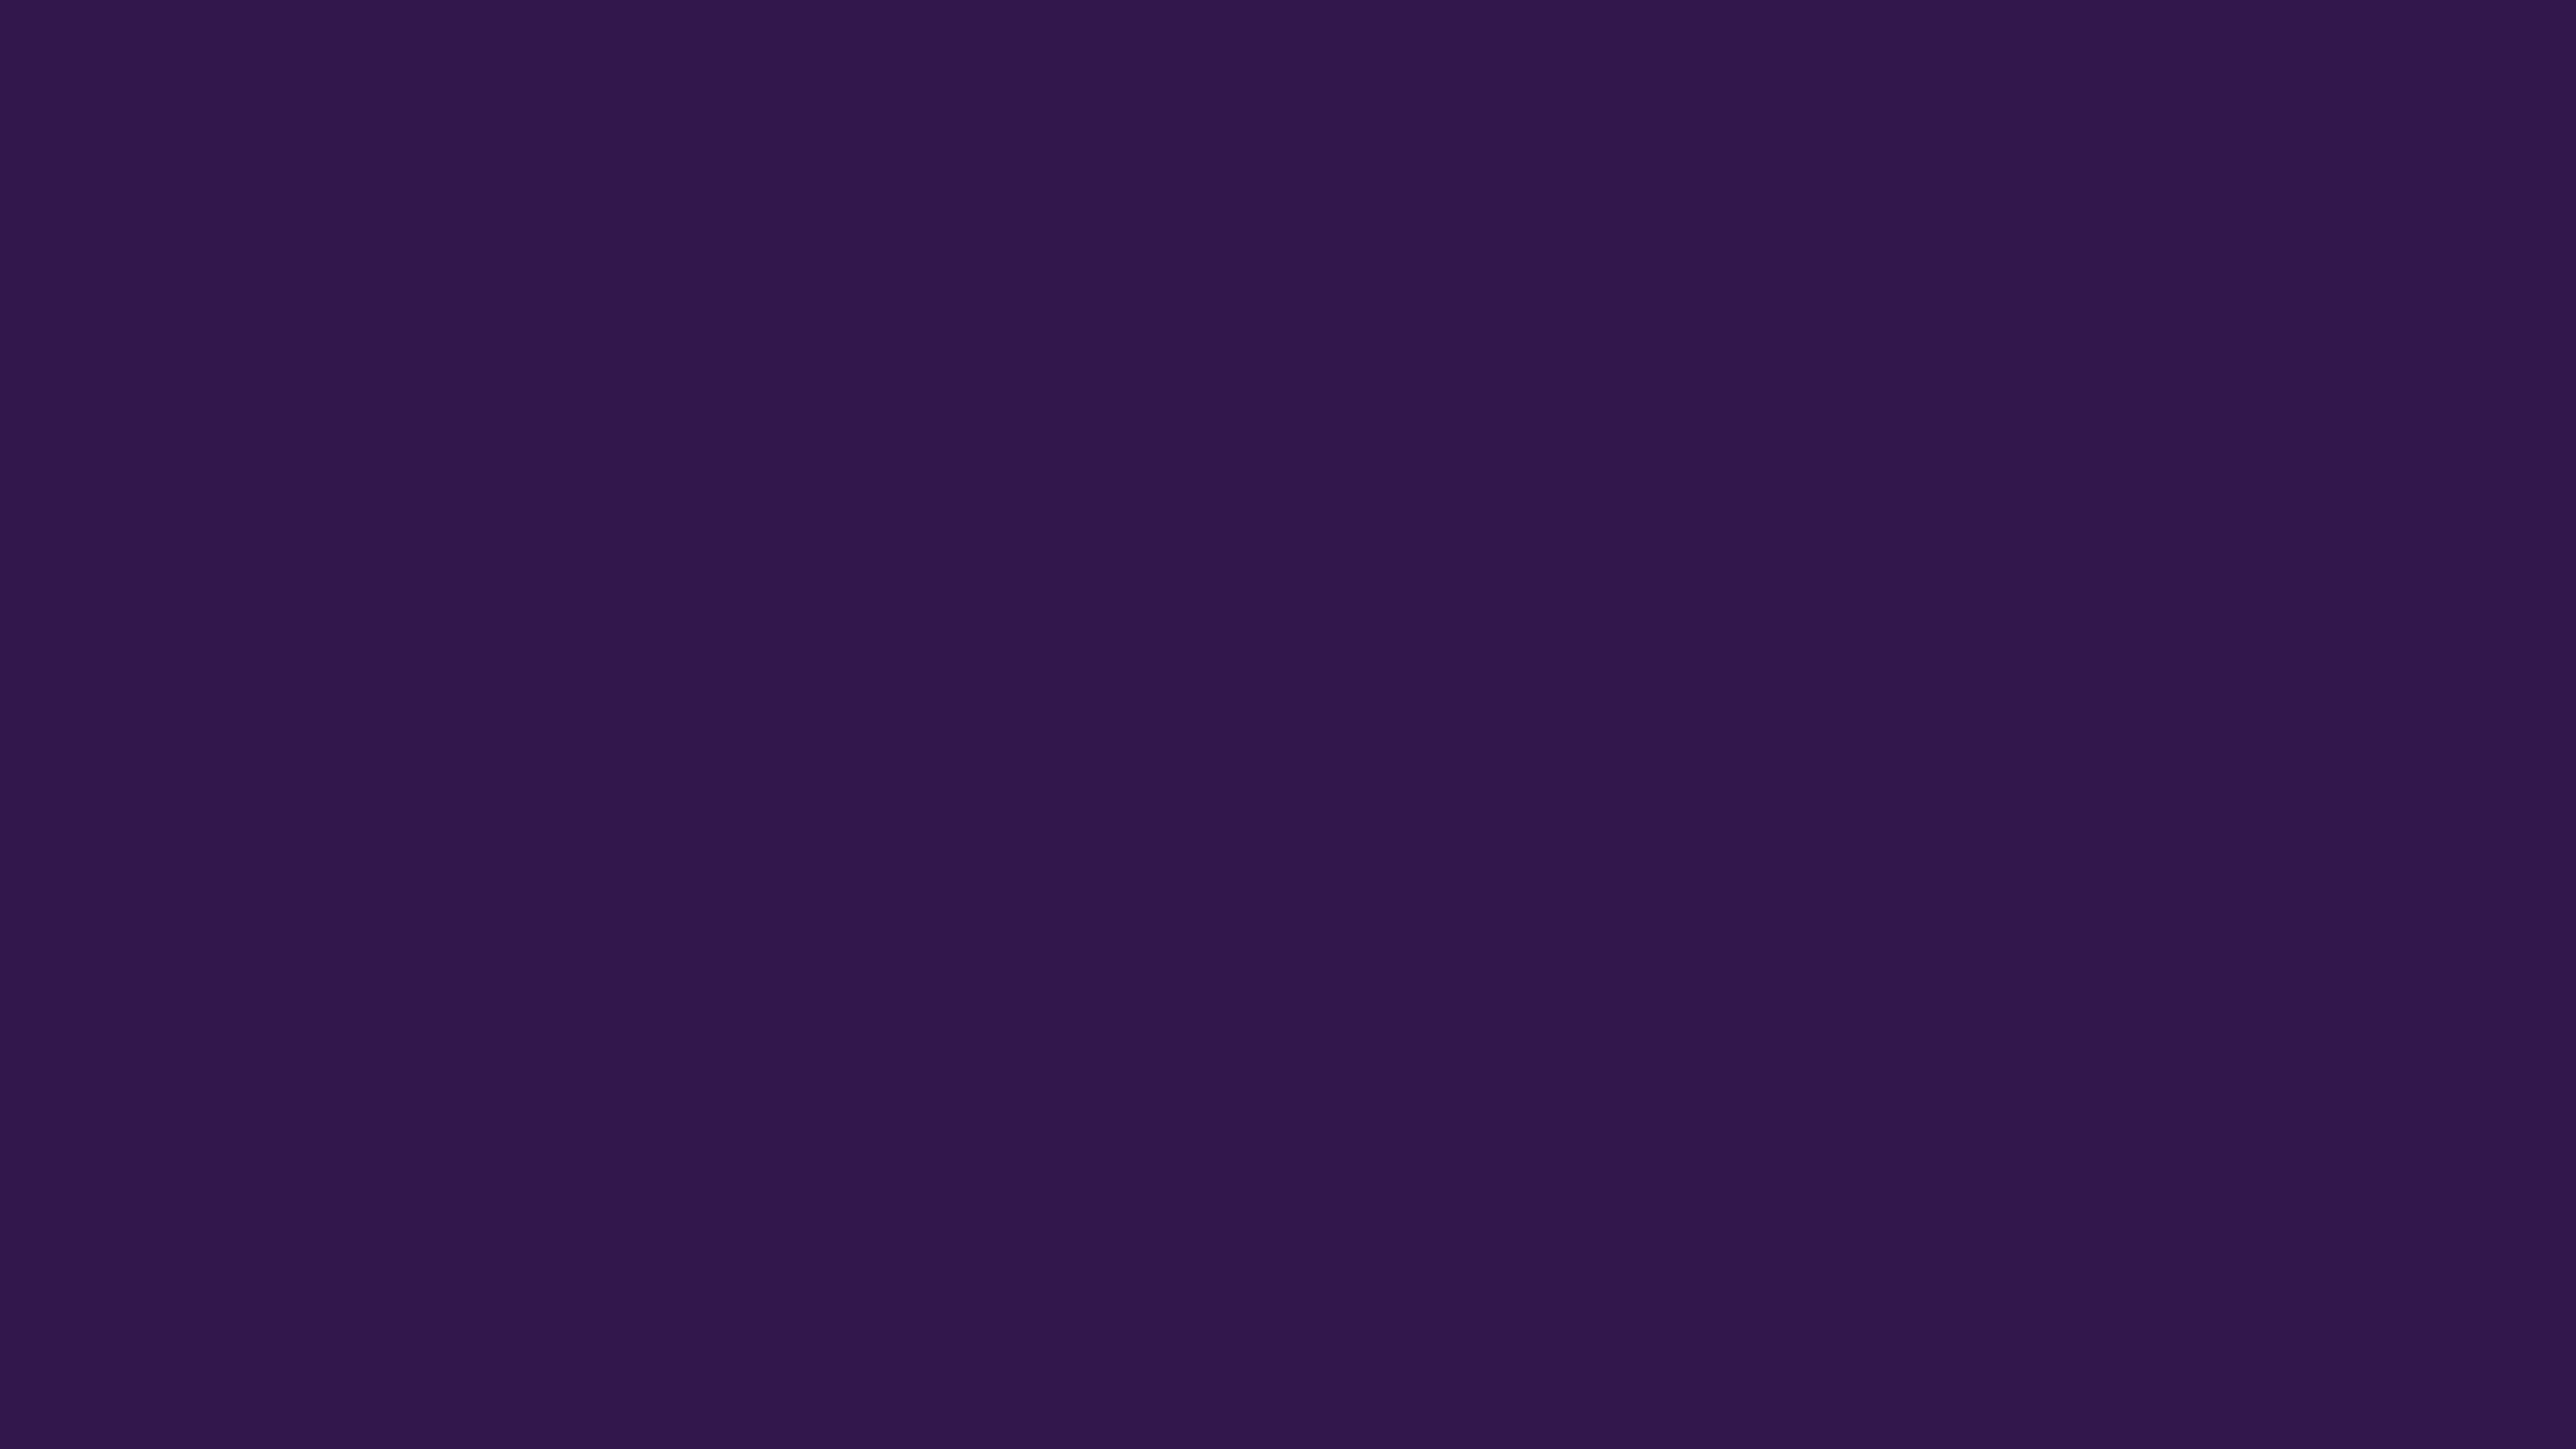 5120x2880 Russian Violet Solid Color Background